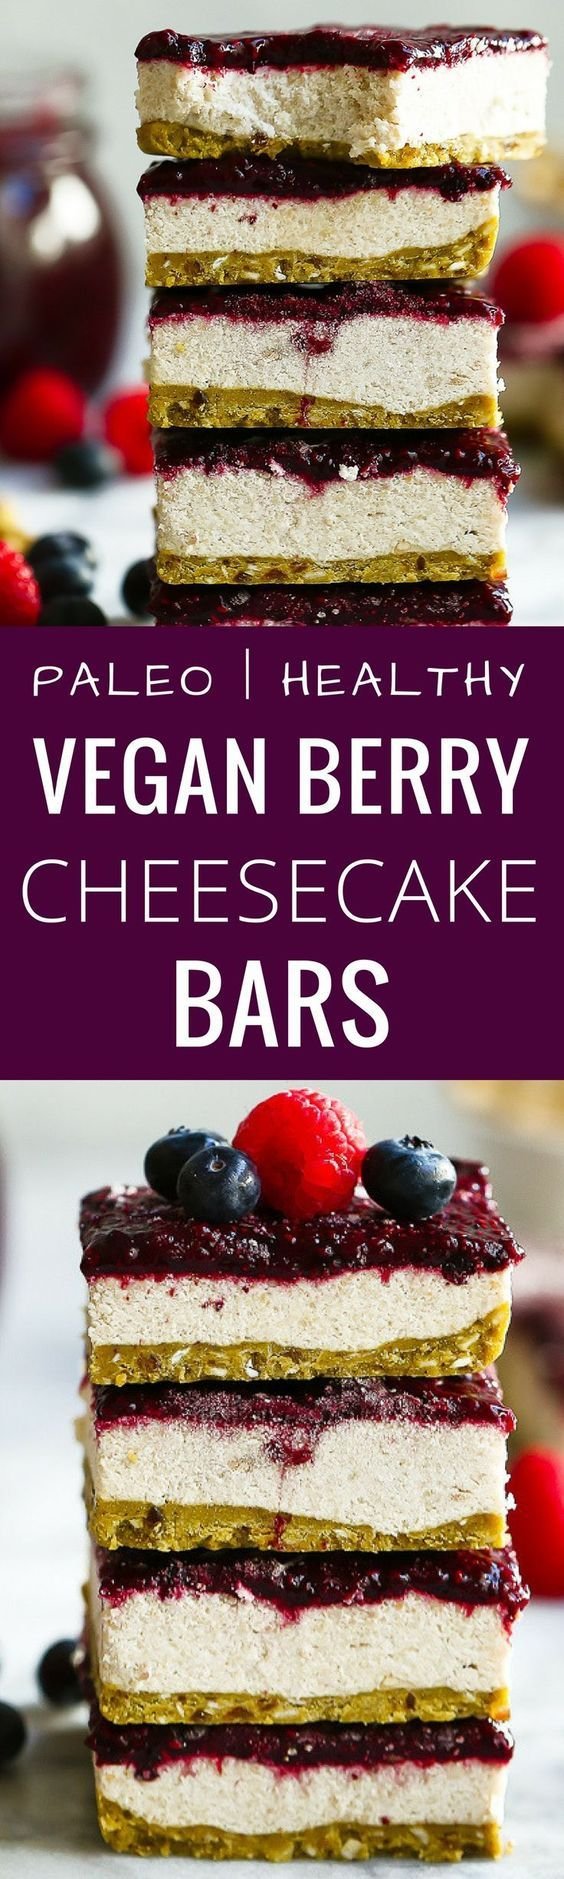 Paleo Vegan Berry Cheesecake Bars. These cheesecake bars are easy to make, taste delicious and are gluten free, grain free, dairy free and sugar free! Low carb cheesecake bars. No bake cheesecake bars. | Posted By: DebbieNet.com